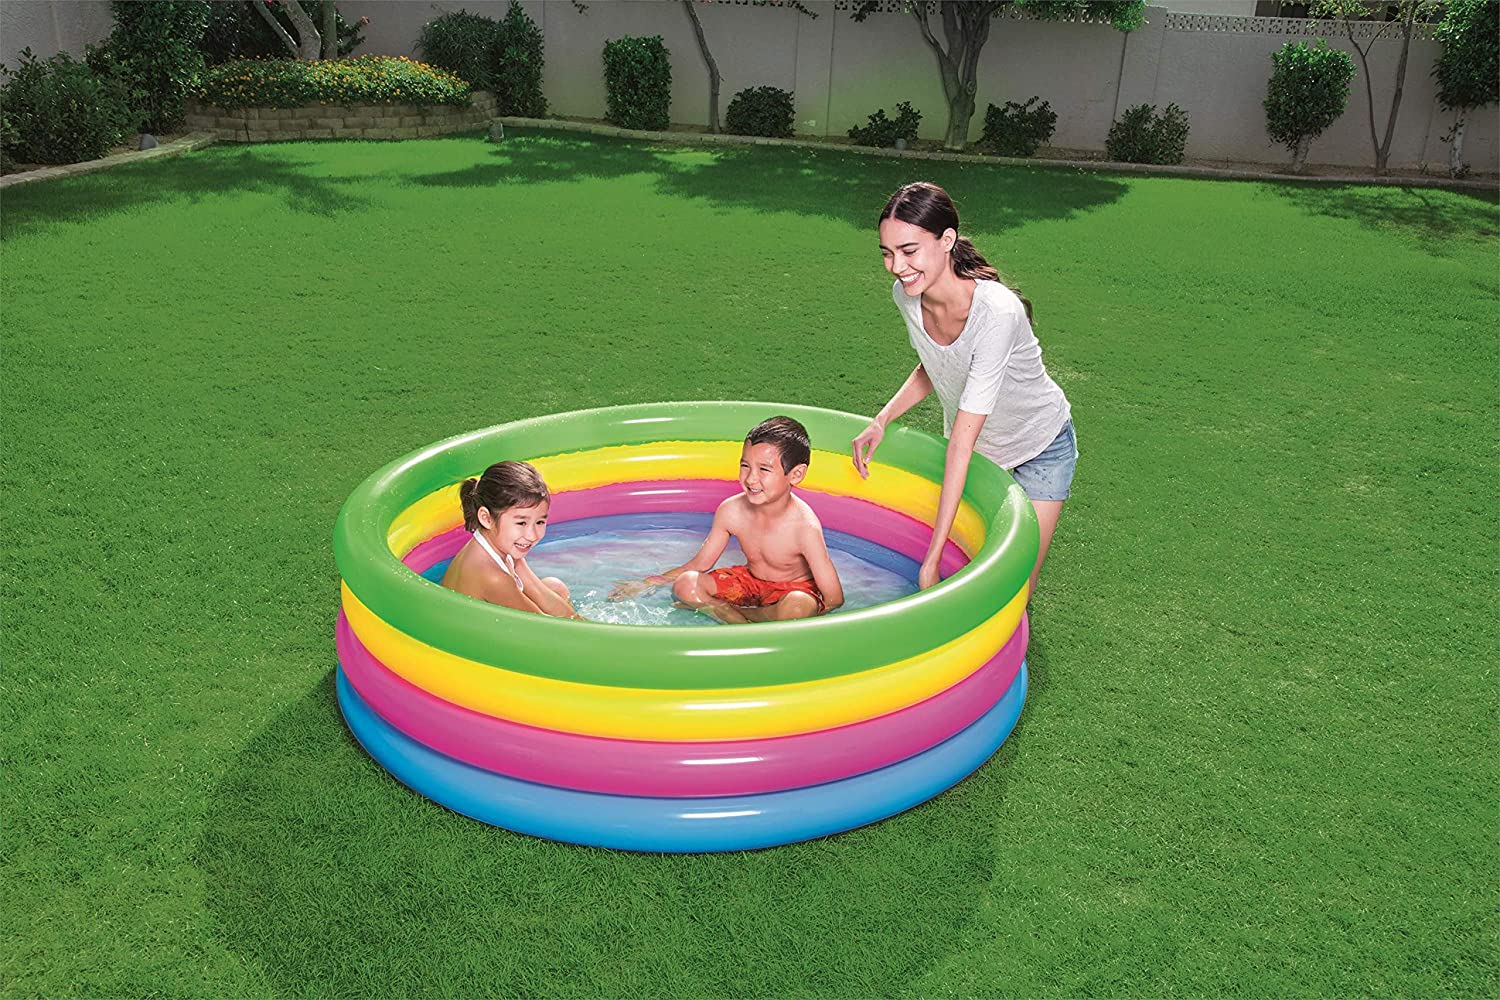 Piscina Hinchable Infantil Bestway Play: Amazon.es: Jardín